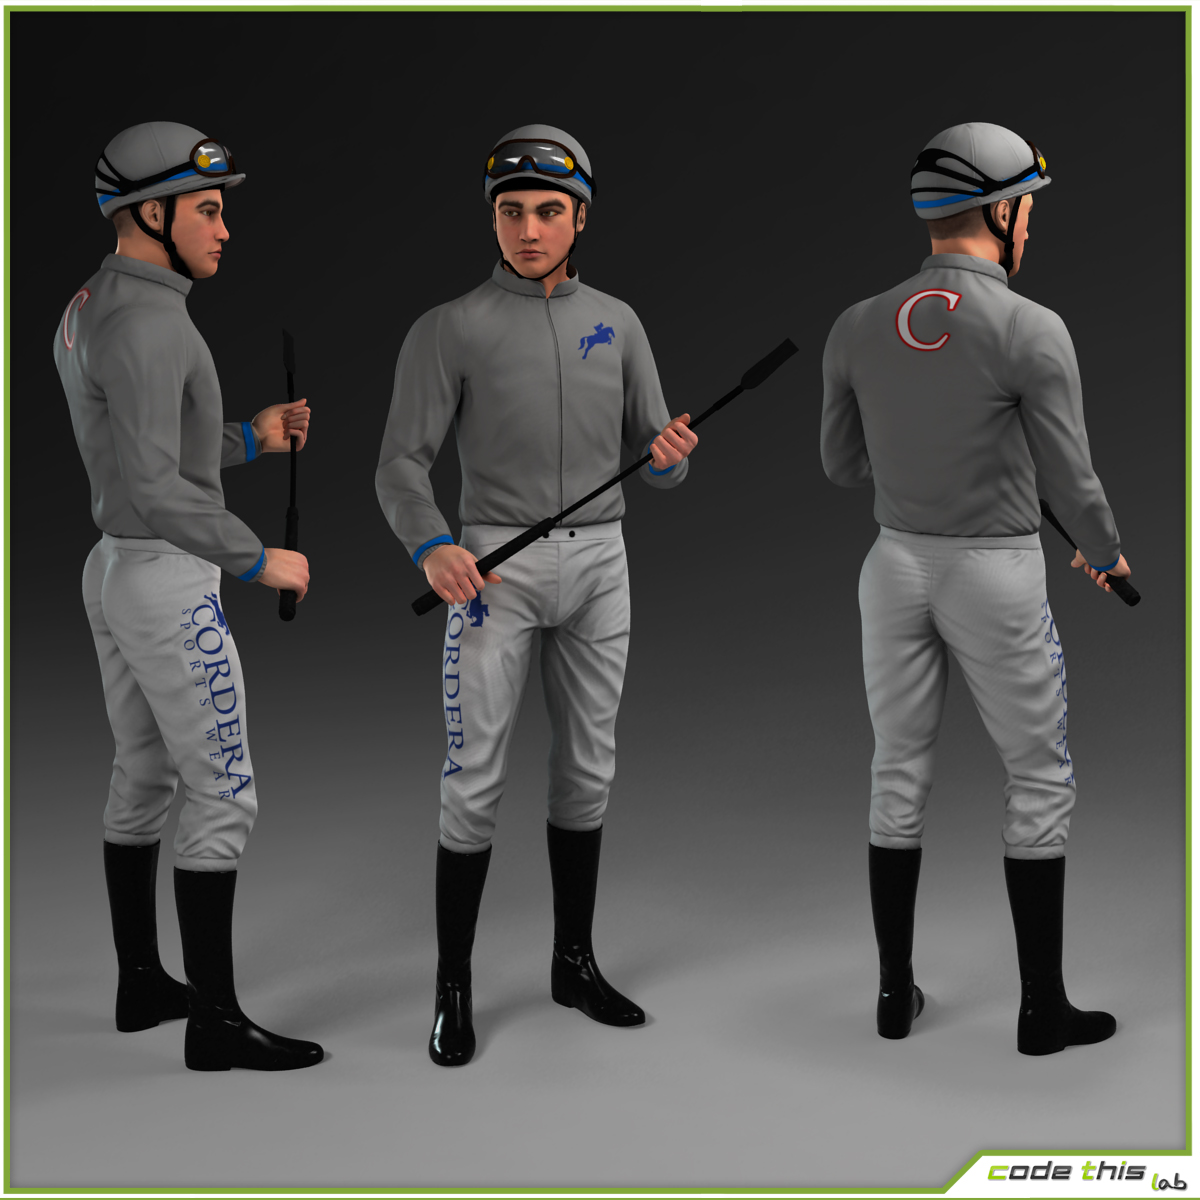 3d Models For Animation 3d Model Racehorse And Jockey Cg Code This Lab Srl